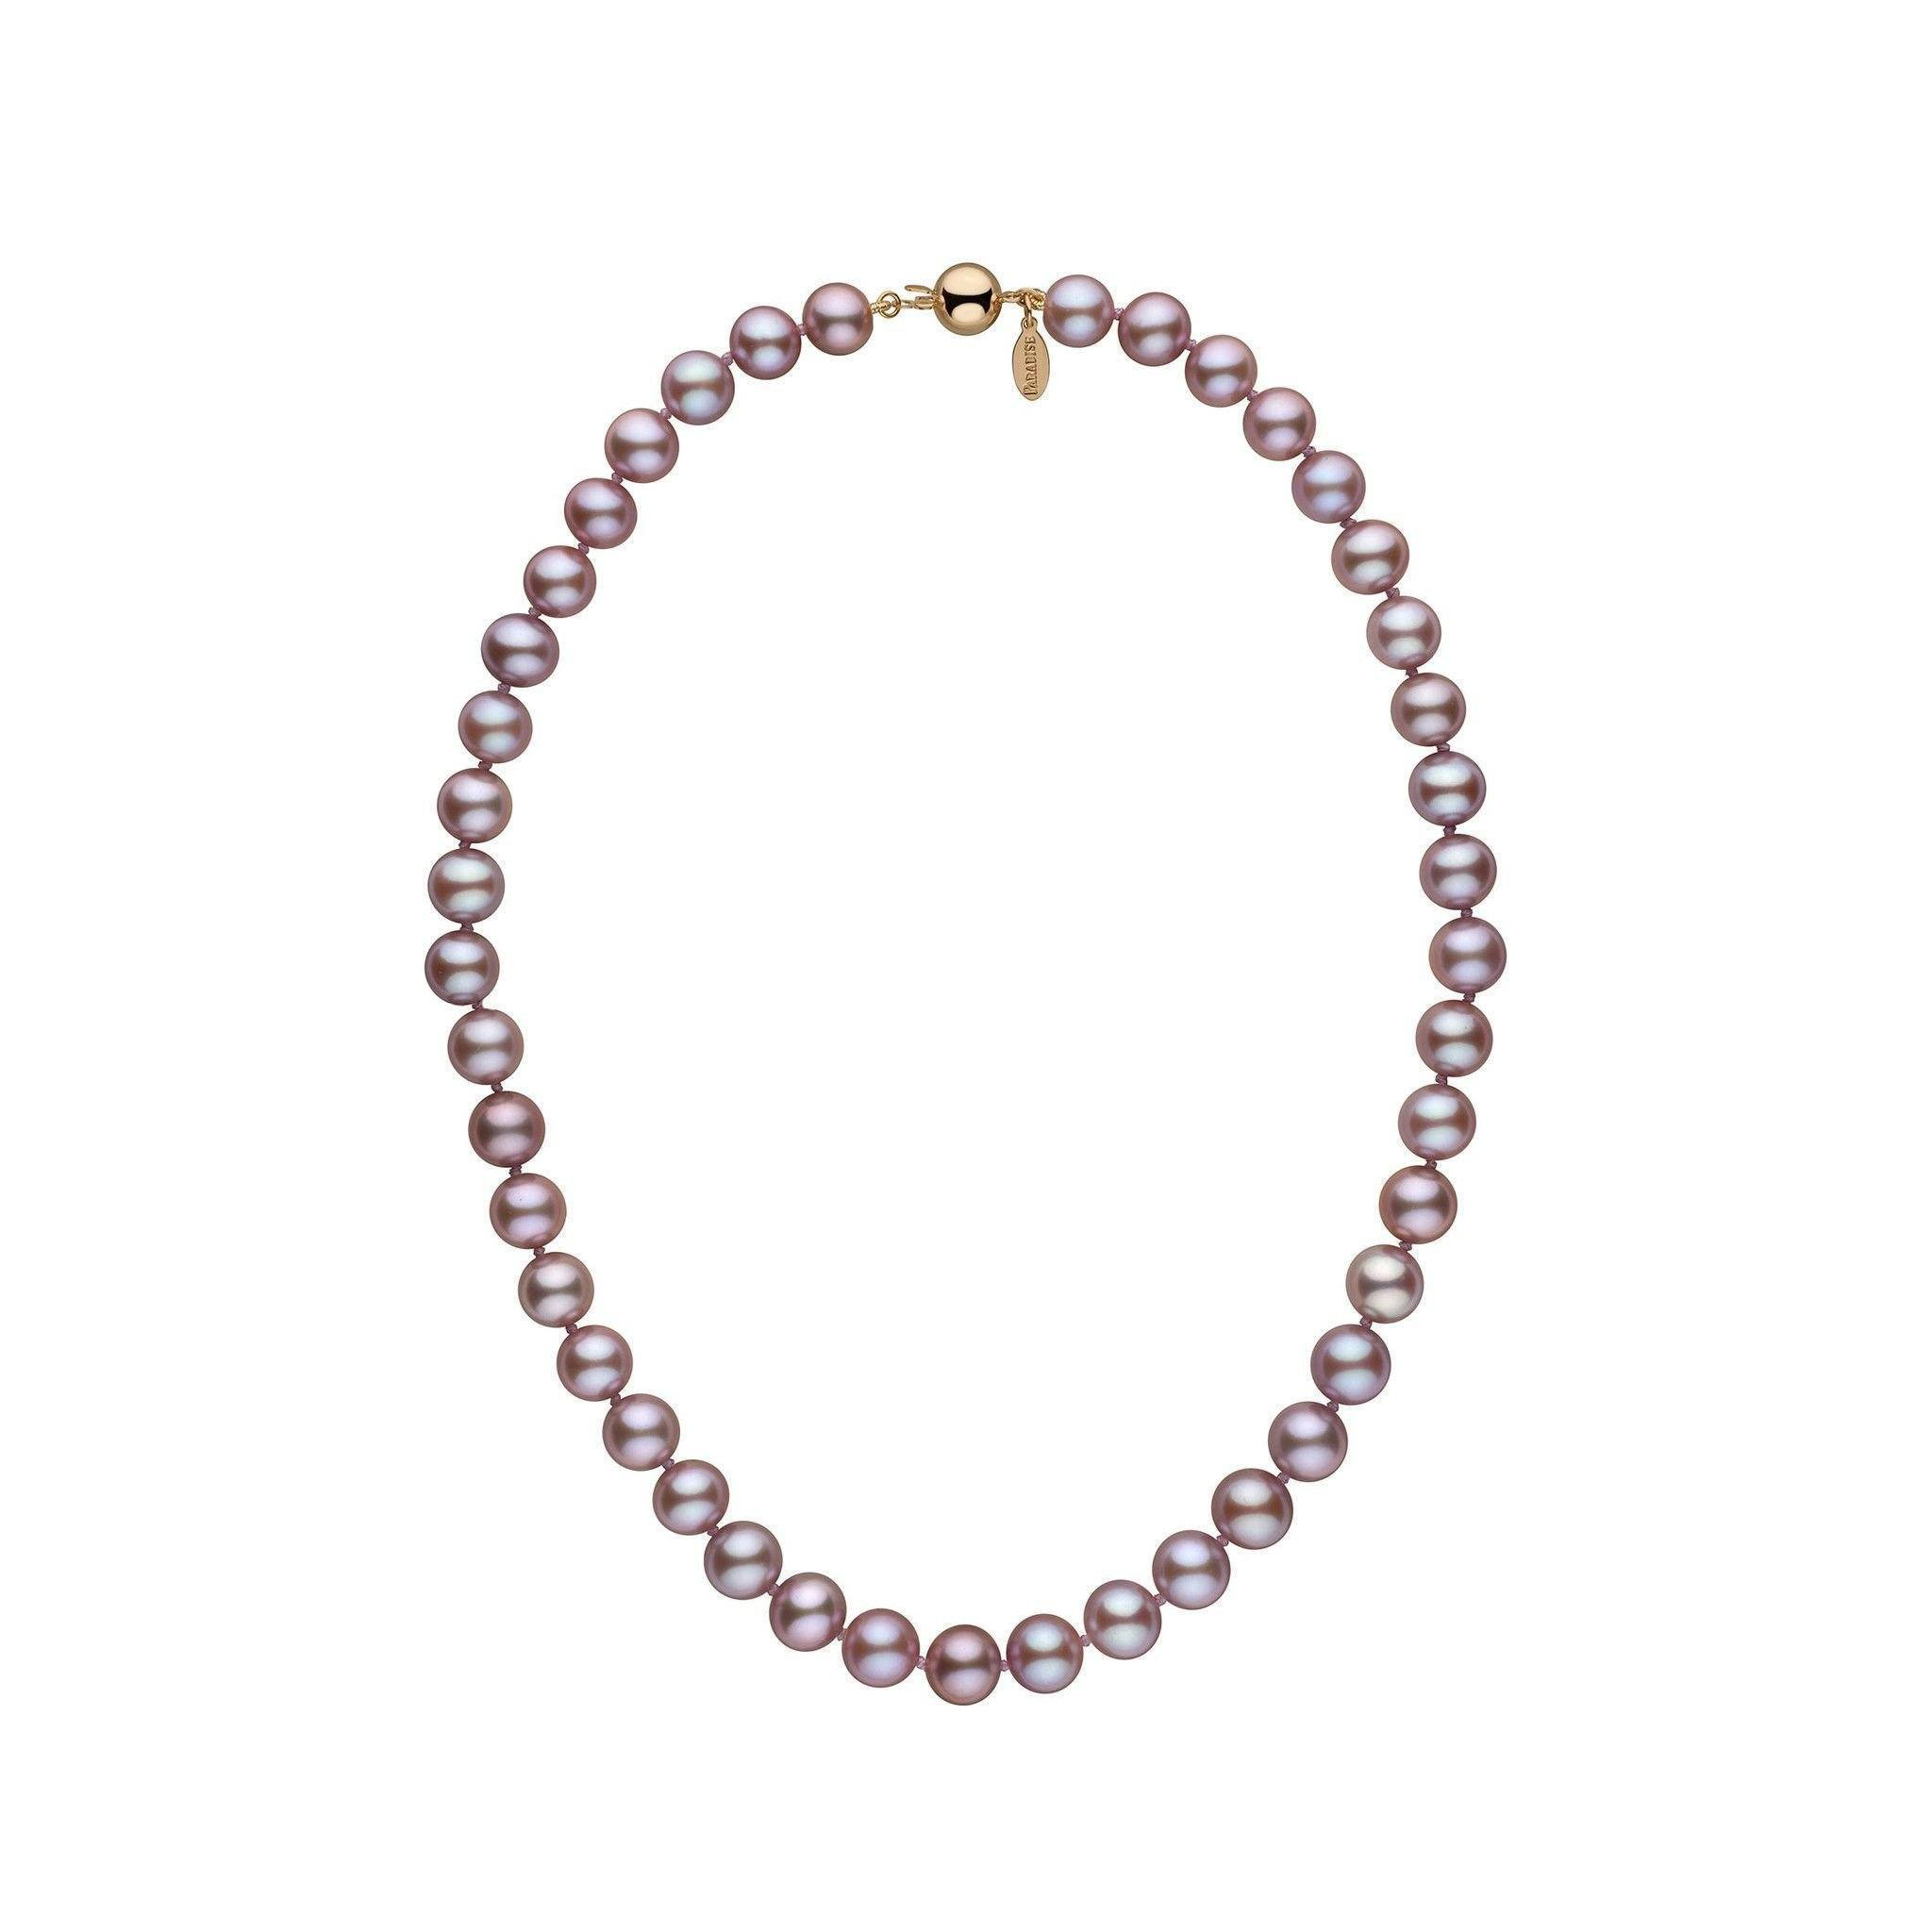 8.5-9.0 mm 16 Inch Lavender Freshadama Freshwater Pearl Necklace